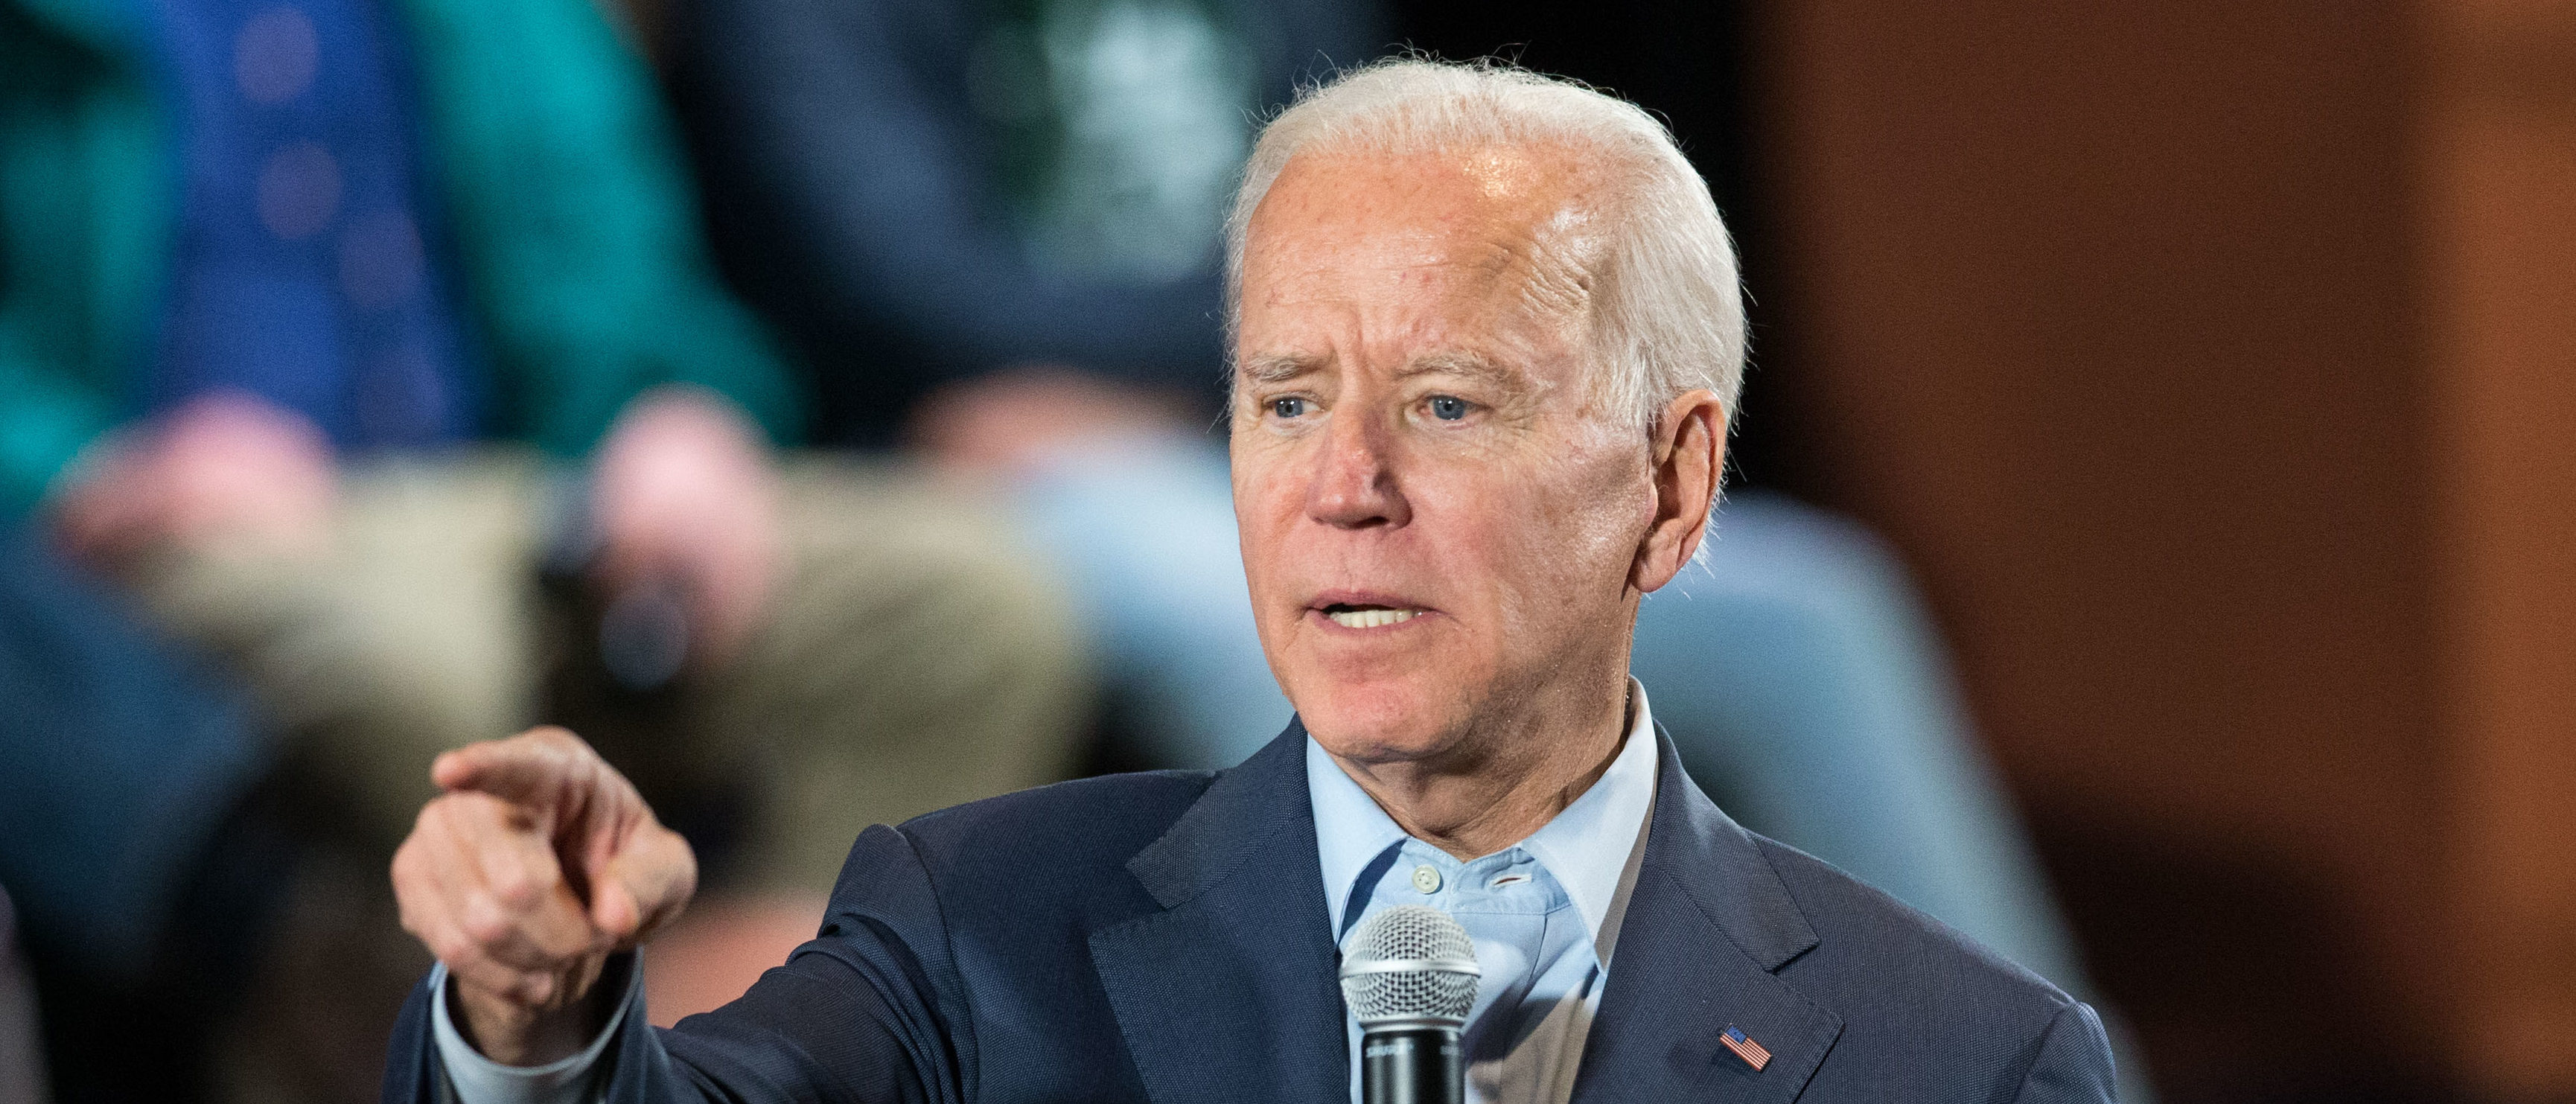 Biden In 2008 Potus Has Authority To Strike Against Imminent Attack On U S The Daily Caller